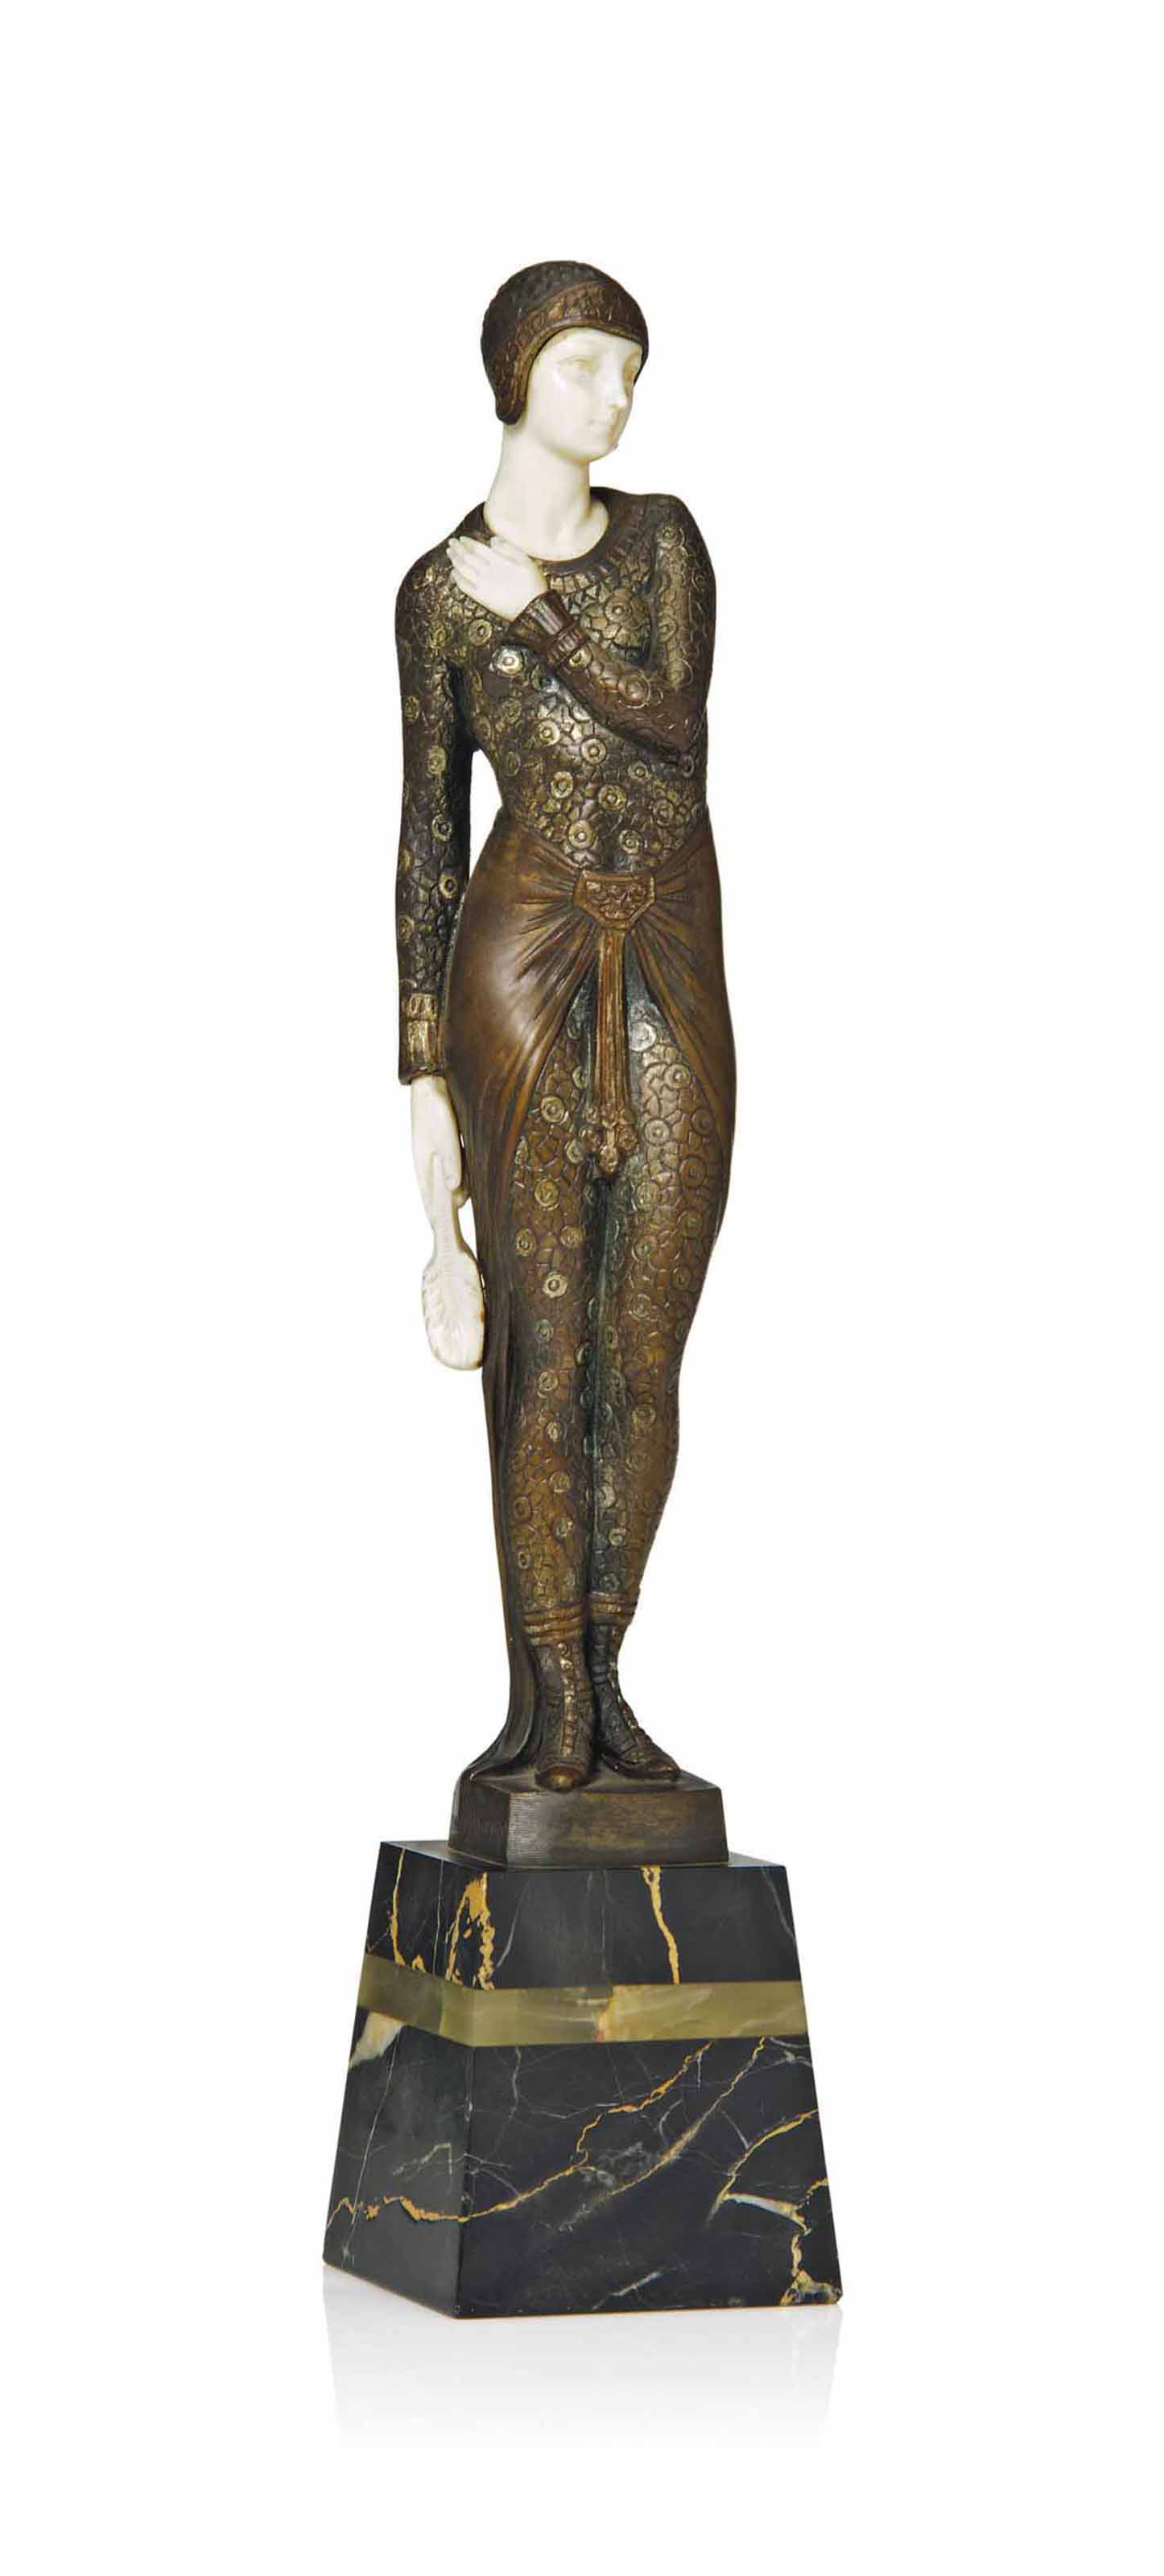 JOE DESCOMPS PATINATED AND COLD-PAINTED BRONZE AND IVORY FIGURE HOLDING A CLOSED FAN